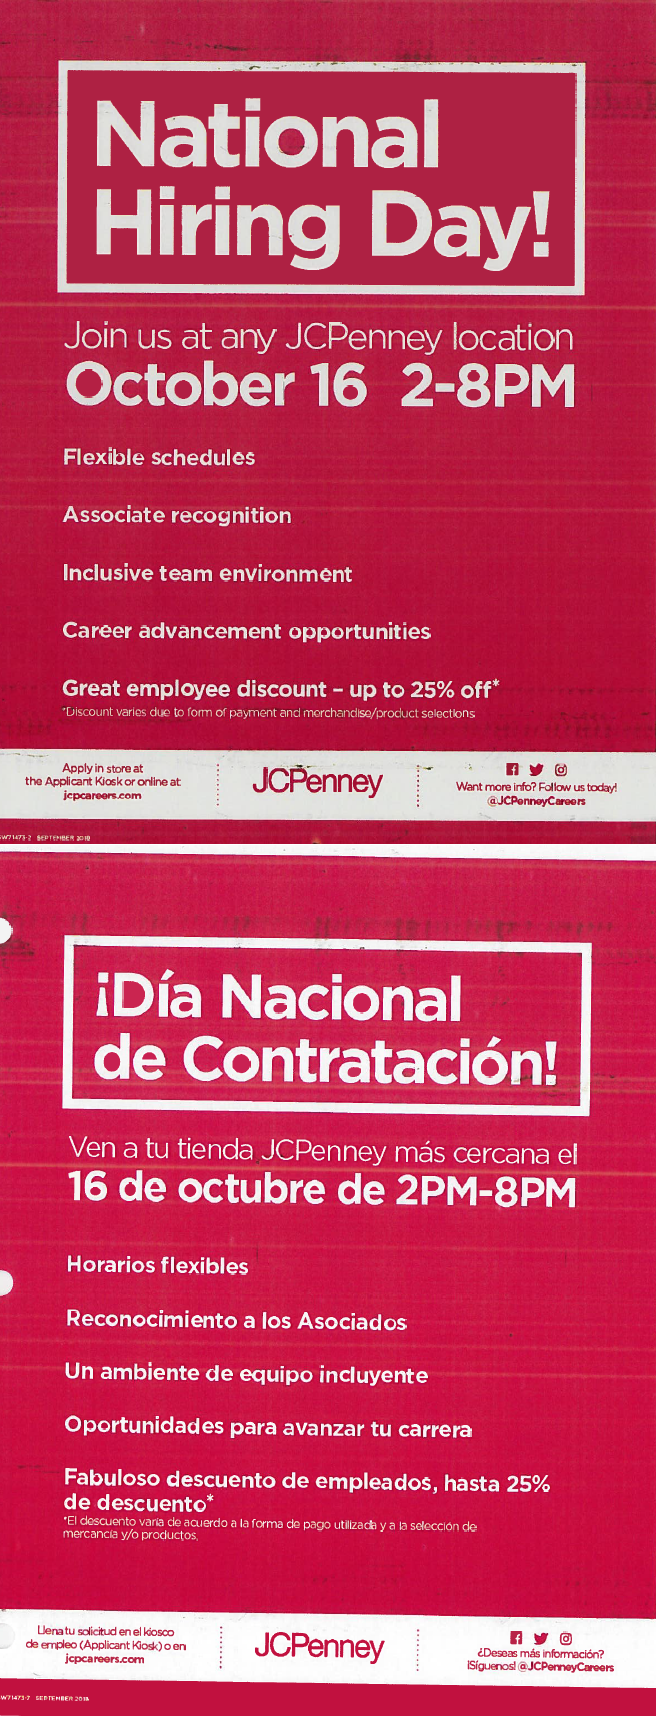 National Hiring Day at JCPenney